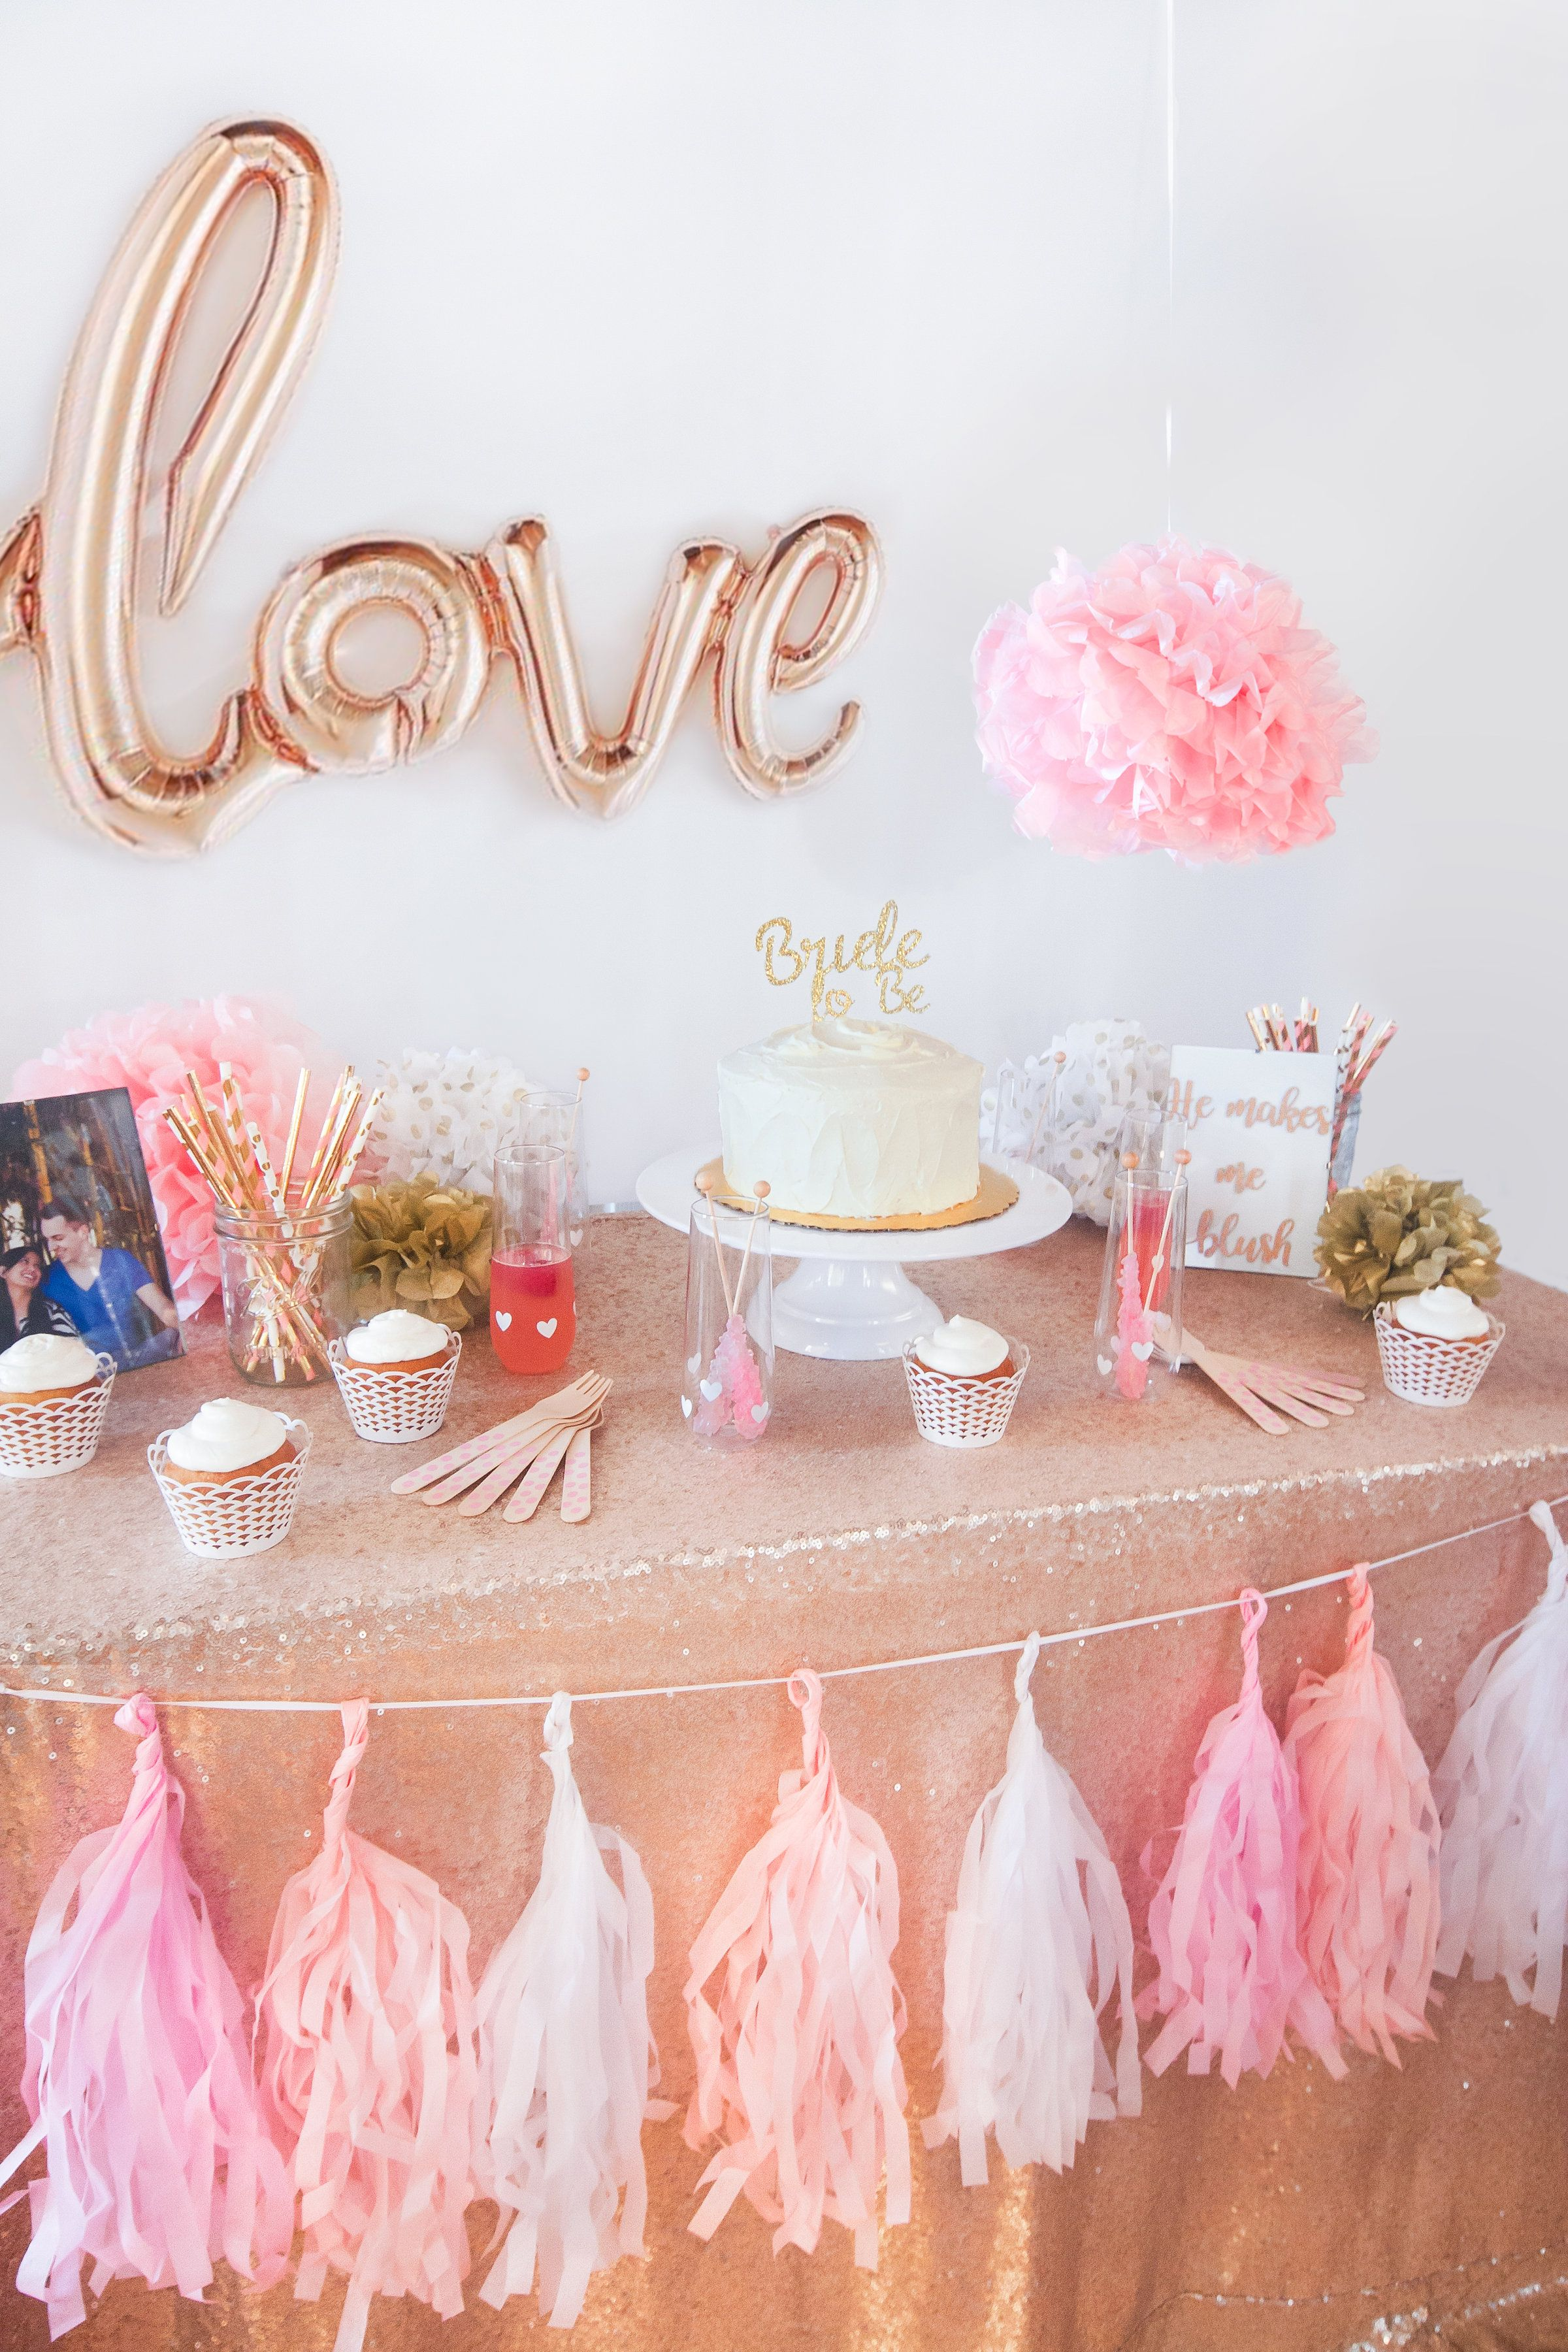 the making me blush bridal shower kit was created with the girliest of girly girls in